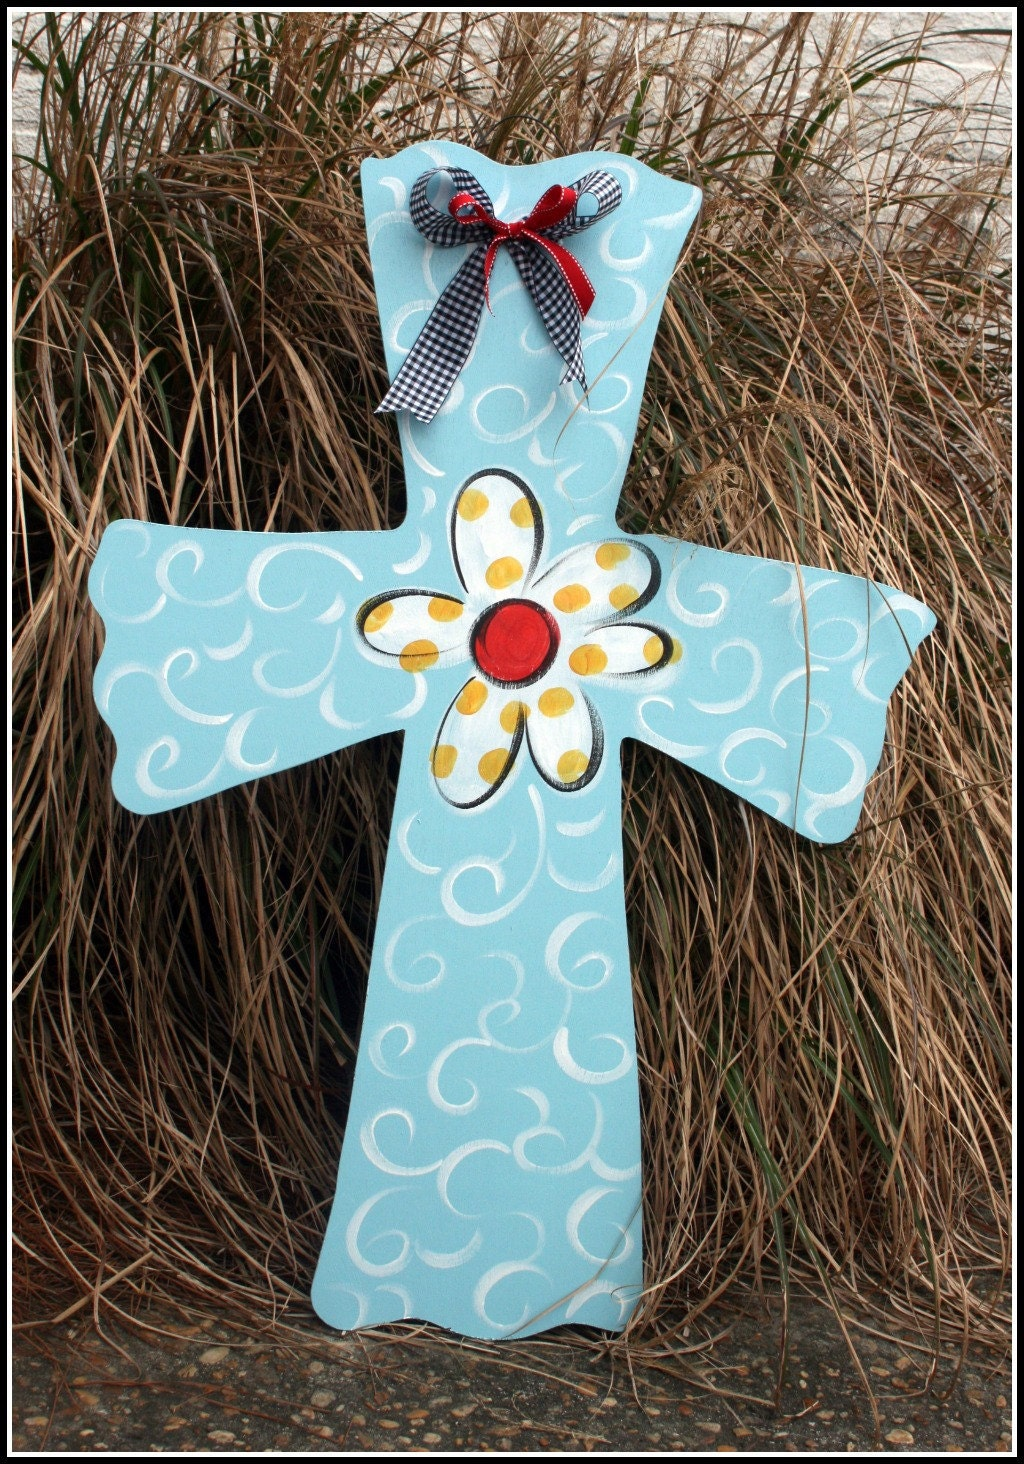 Large Wooden Cross Door Hanger Decor Art Hand By Ladeedahart